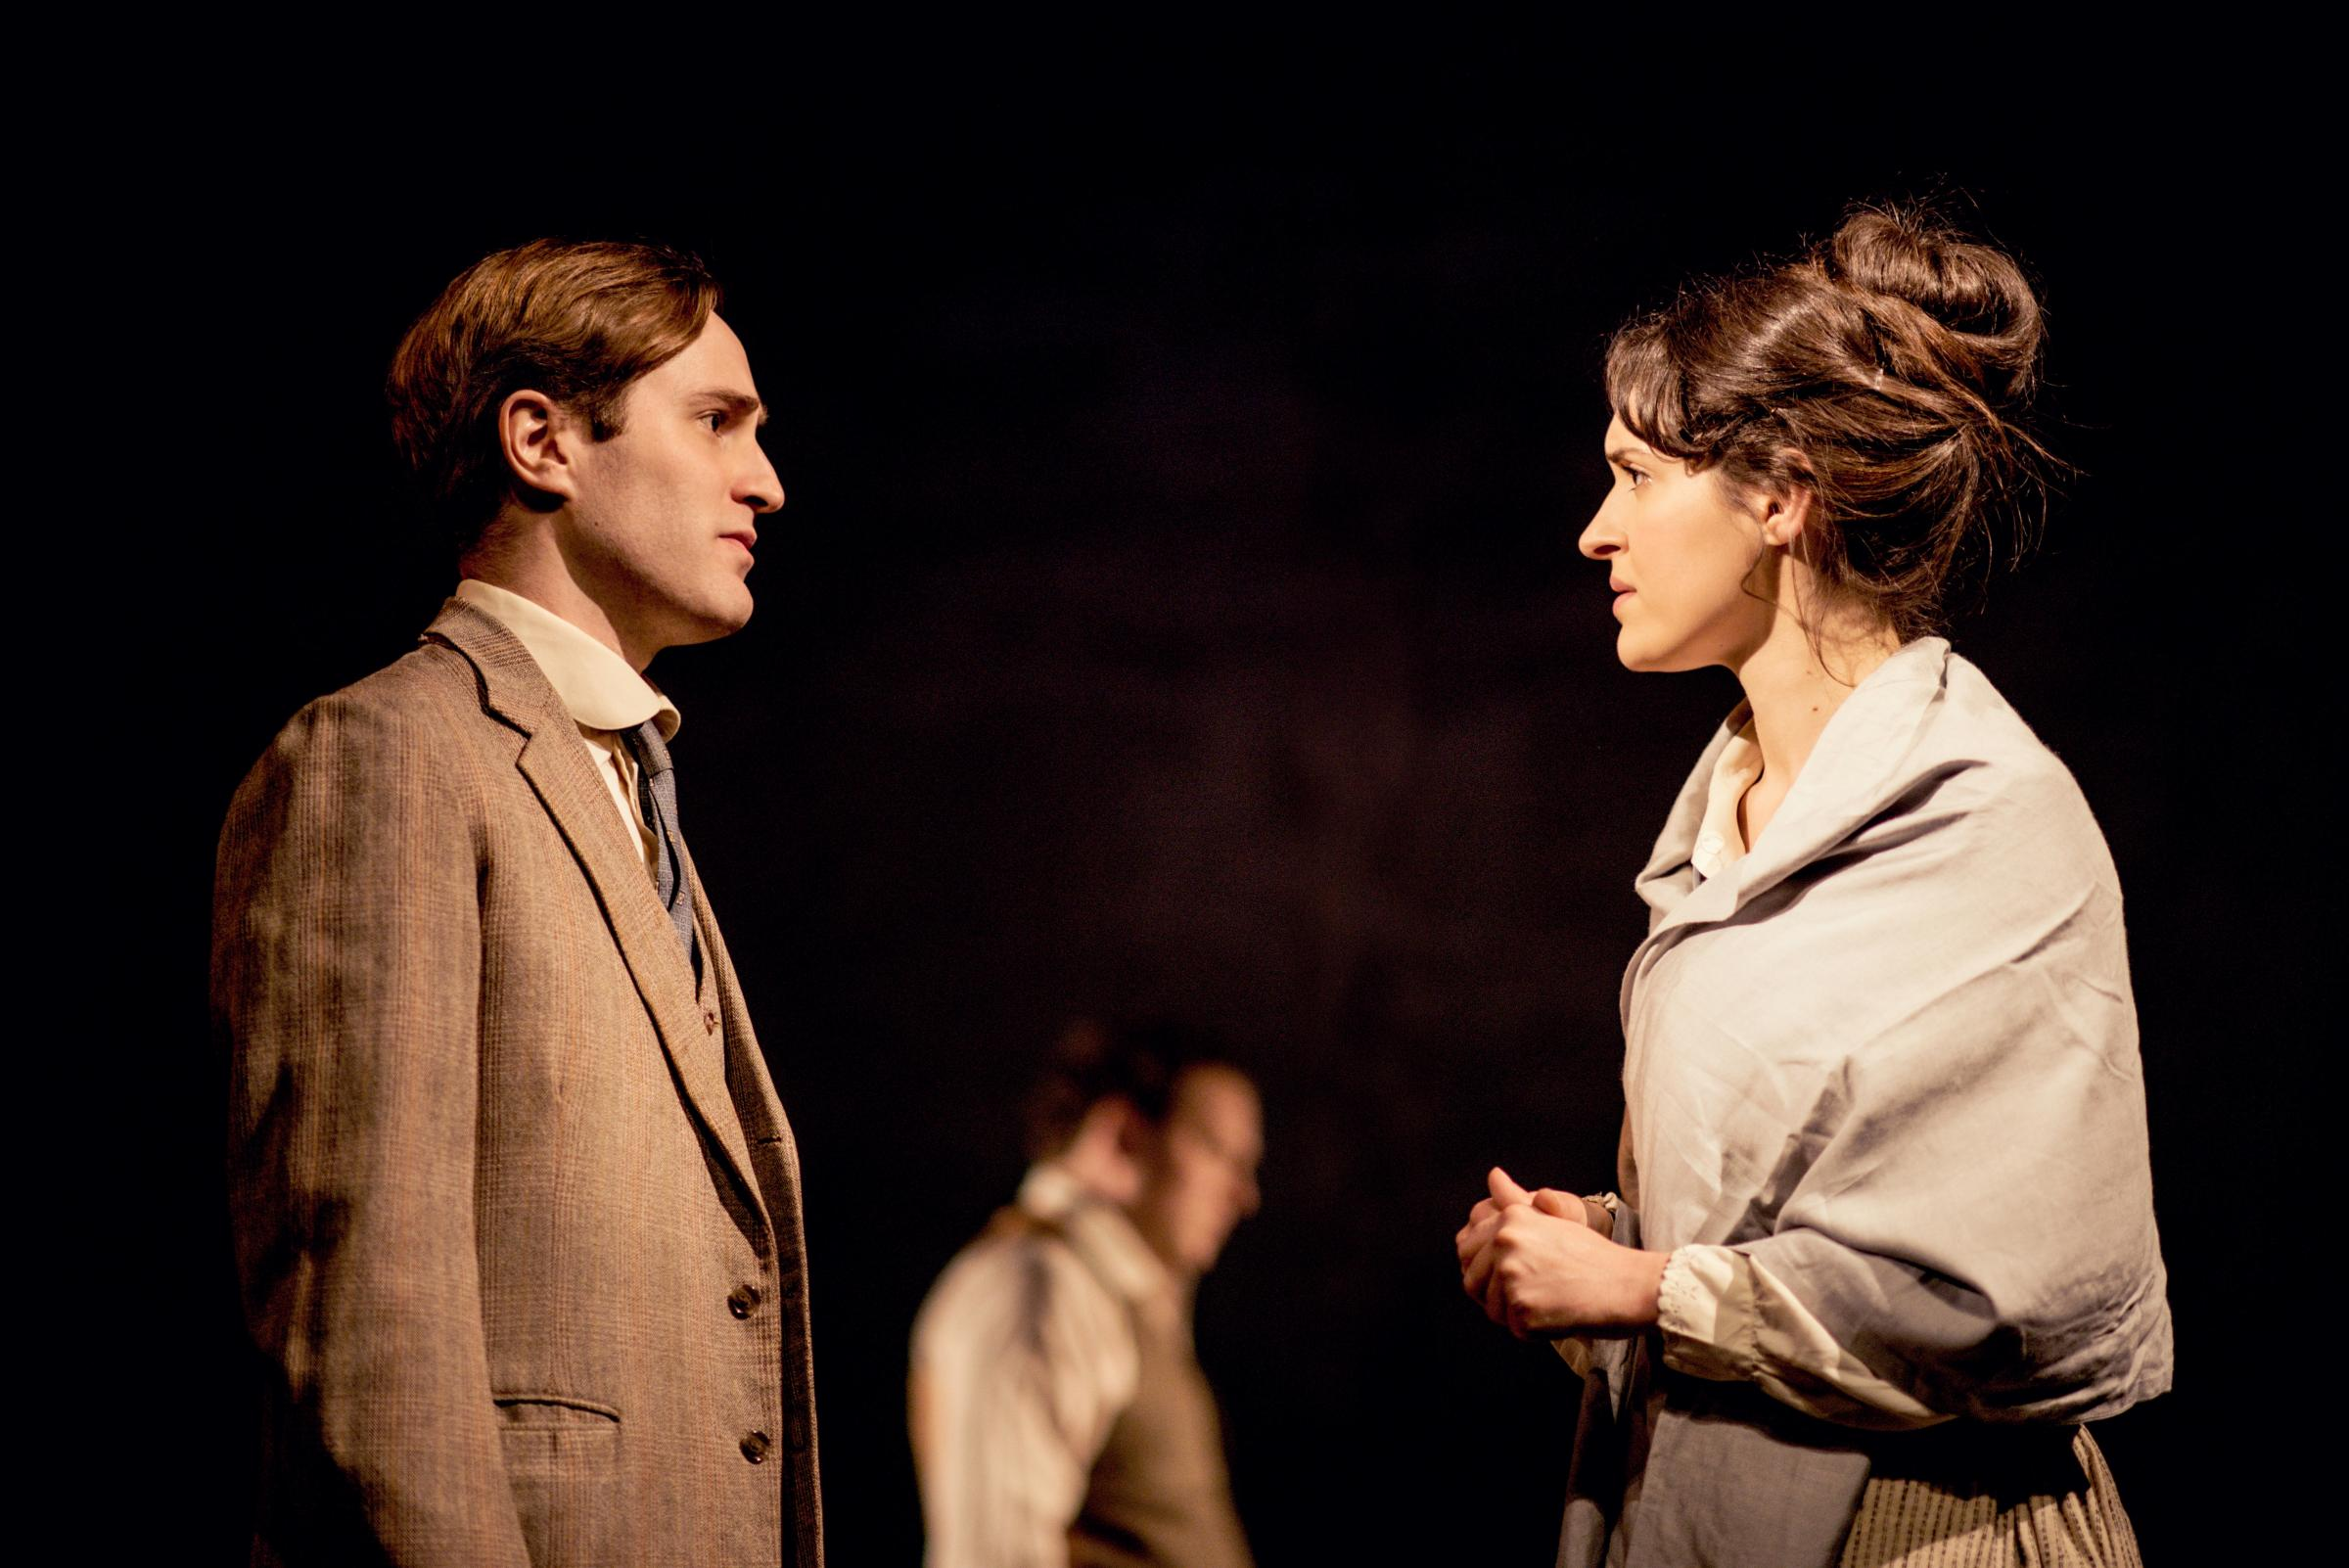 A Passage To India - Edward Killingback (Ronny) and Phoebe Pryce (Adela). Photo by Idil Sukan